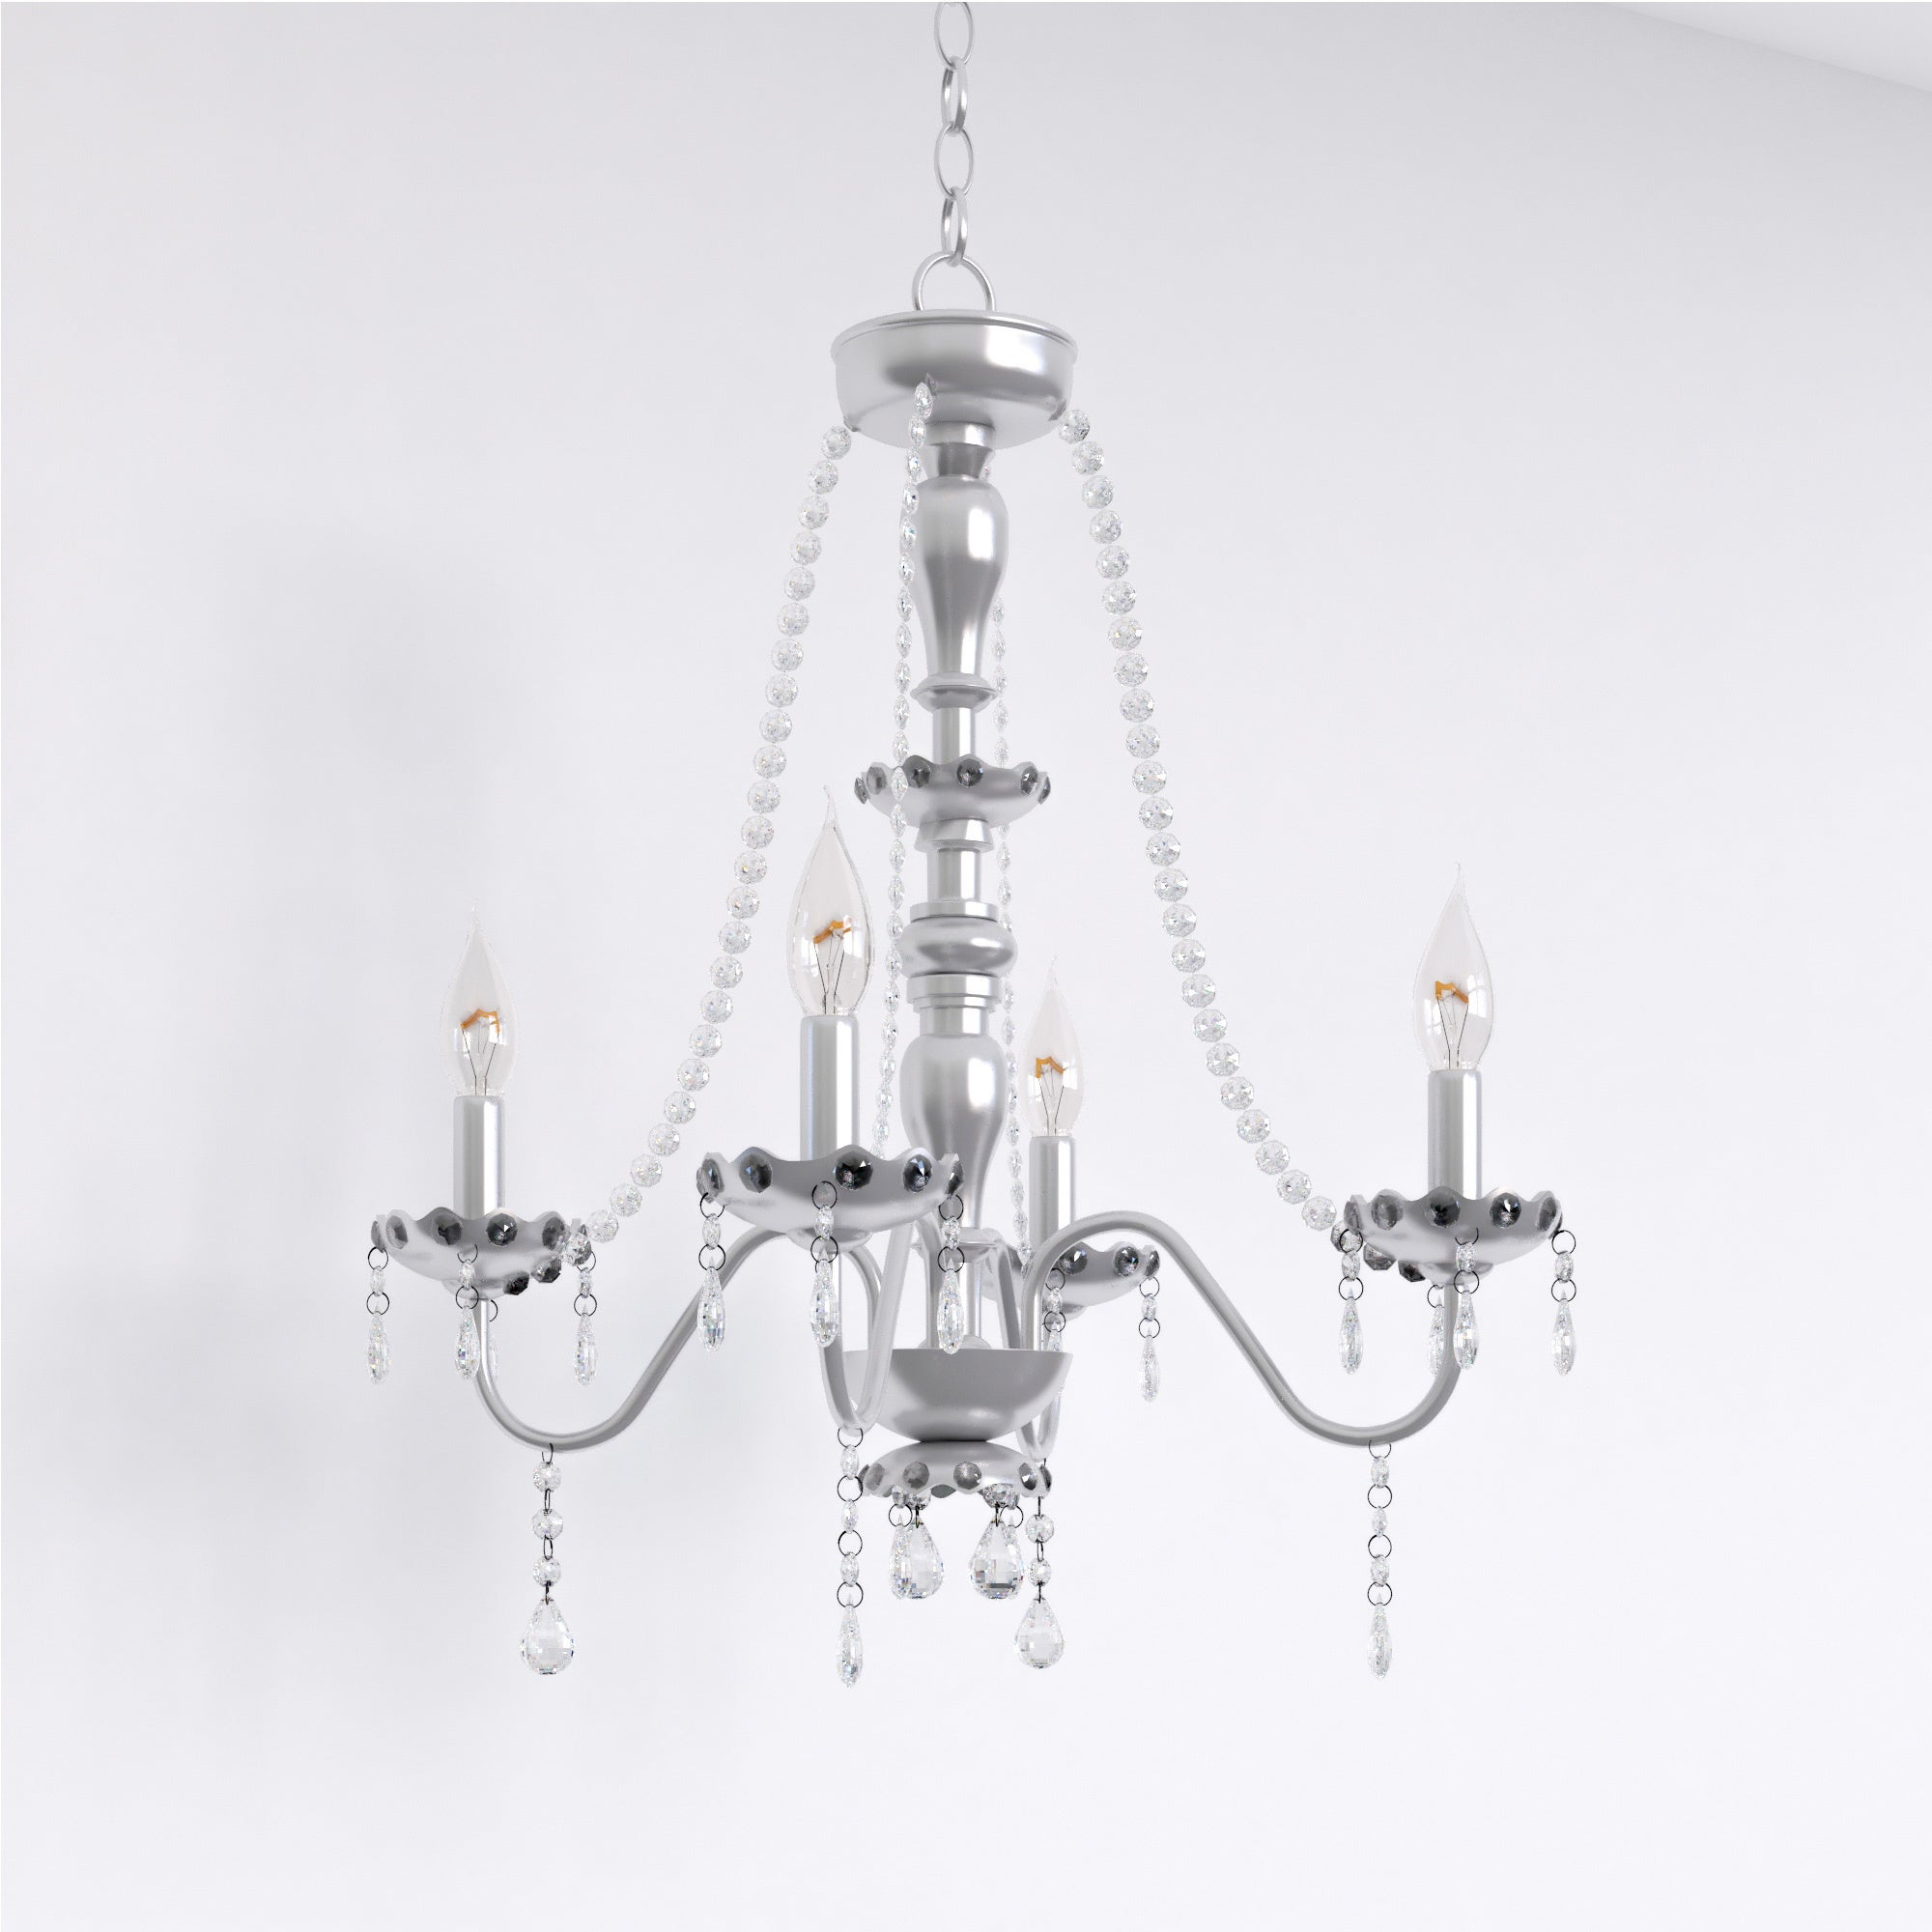 Porch & Den Cherrywood Randolph Chrome 5-light Crystal Chandelier - Thumbnail 0